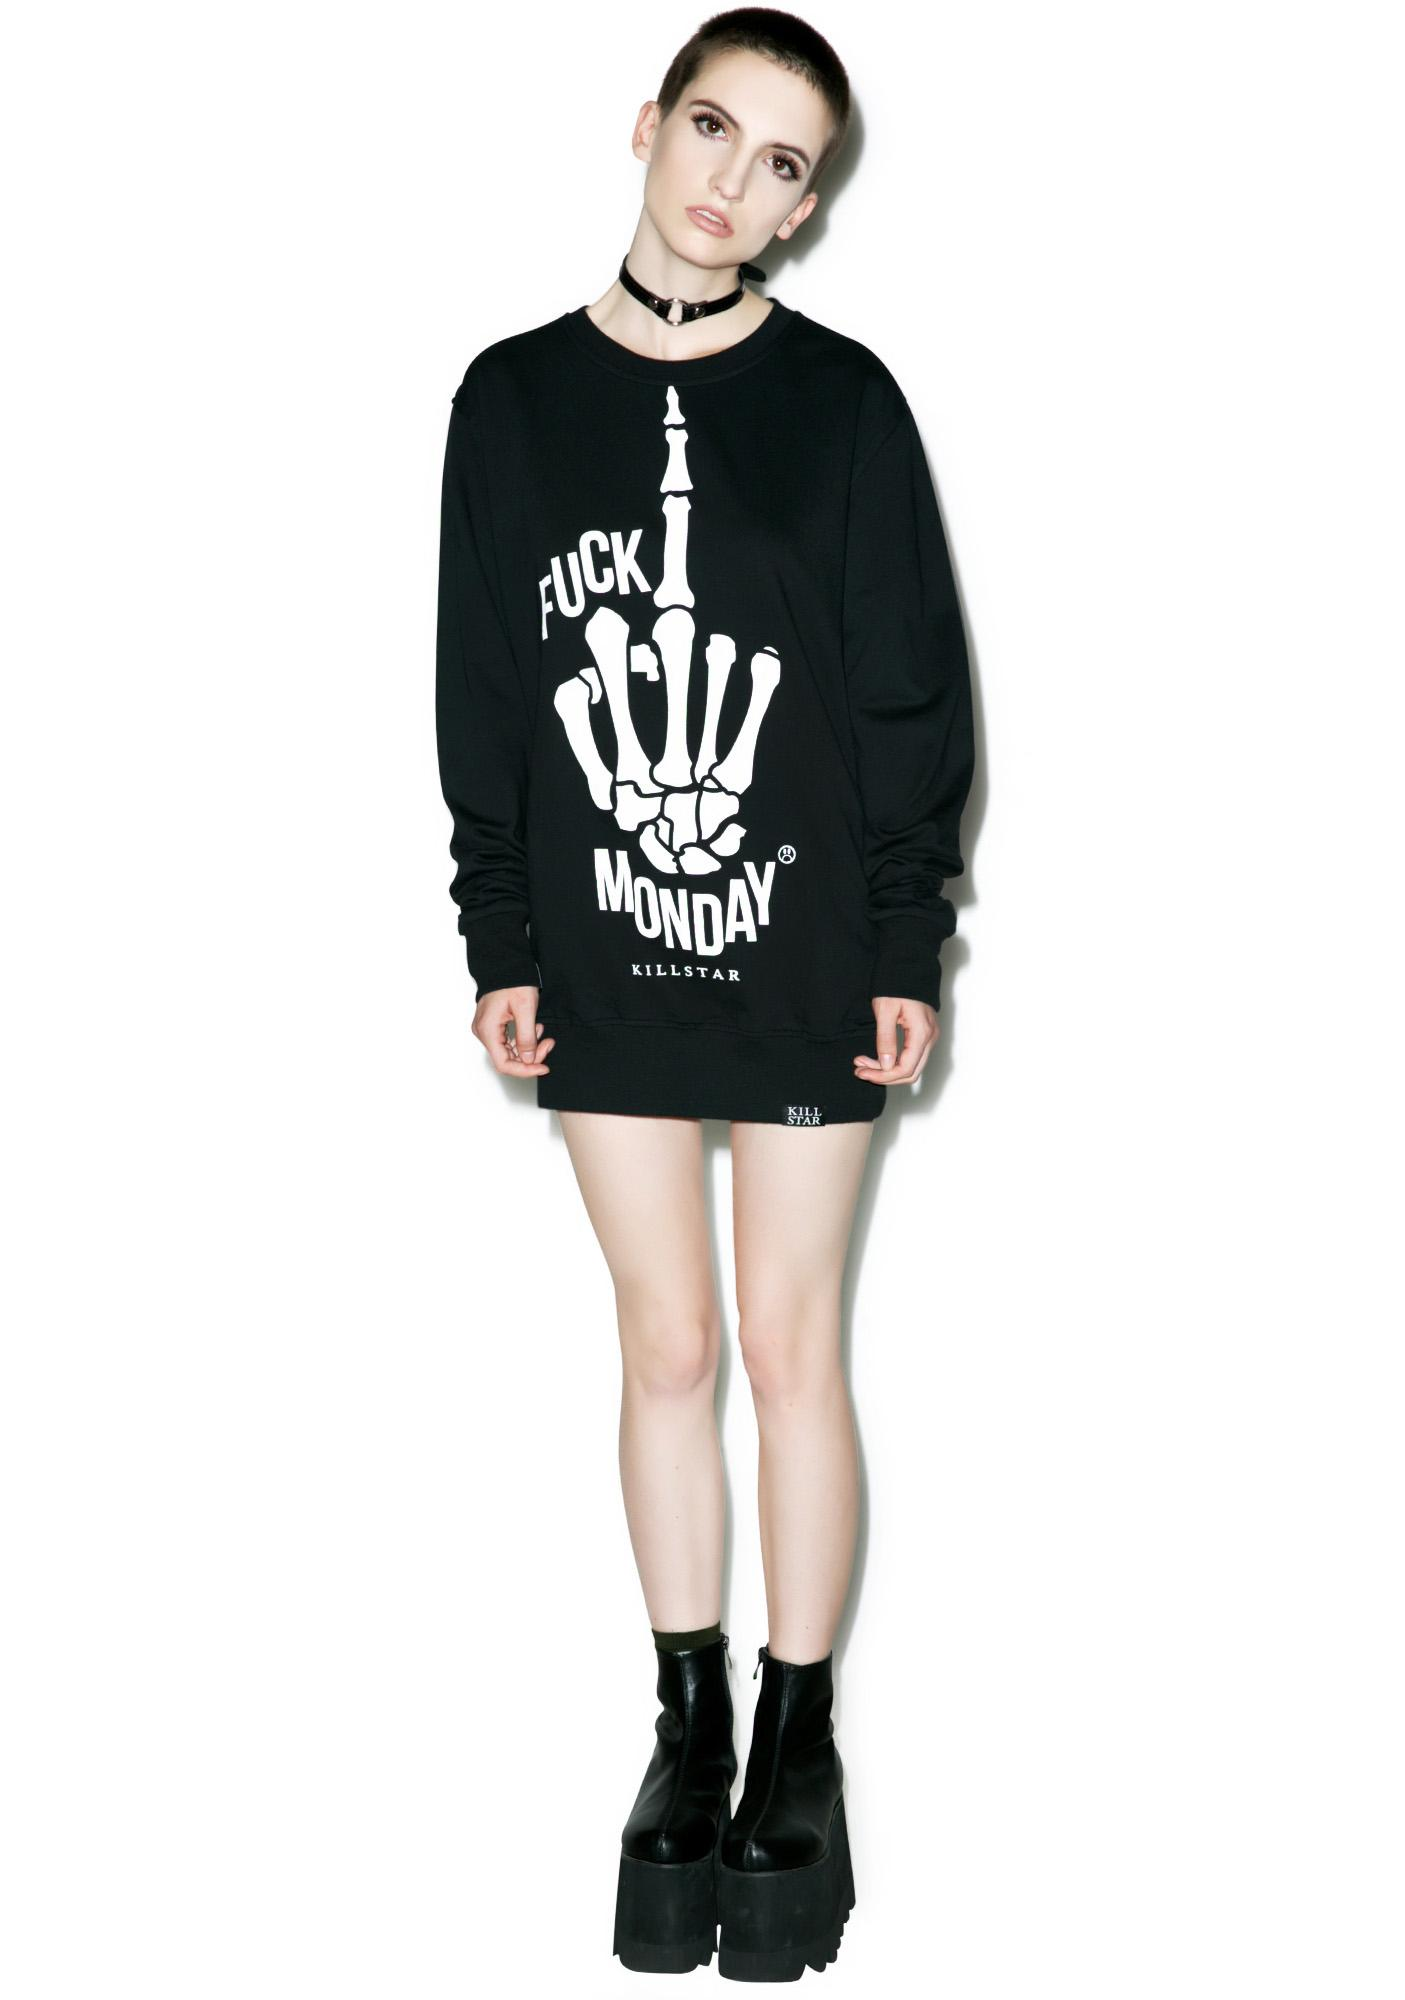 Killstar Monday Sweatshirt